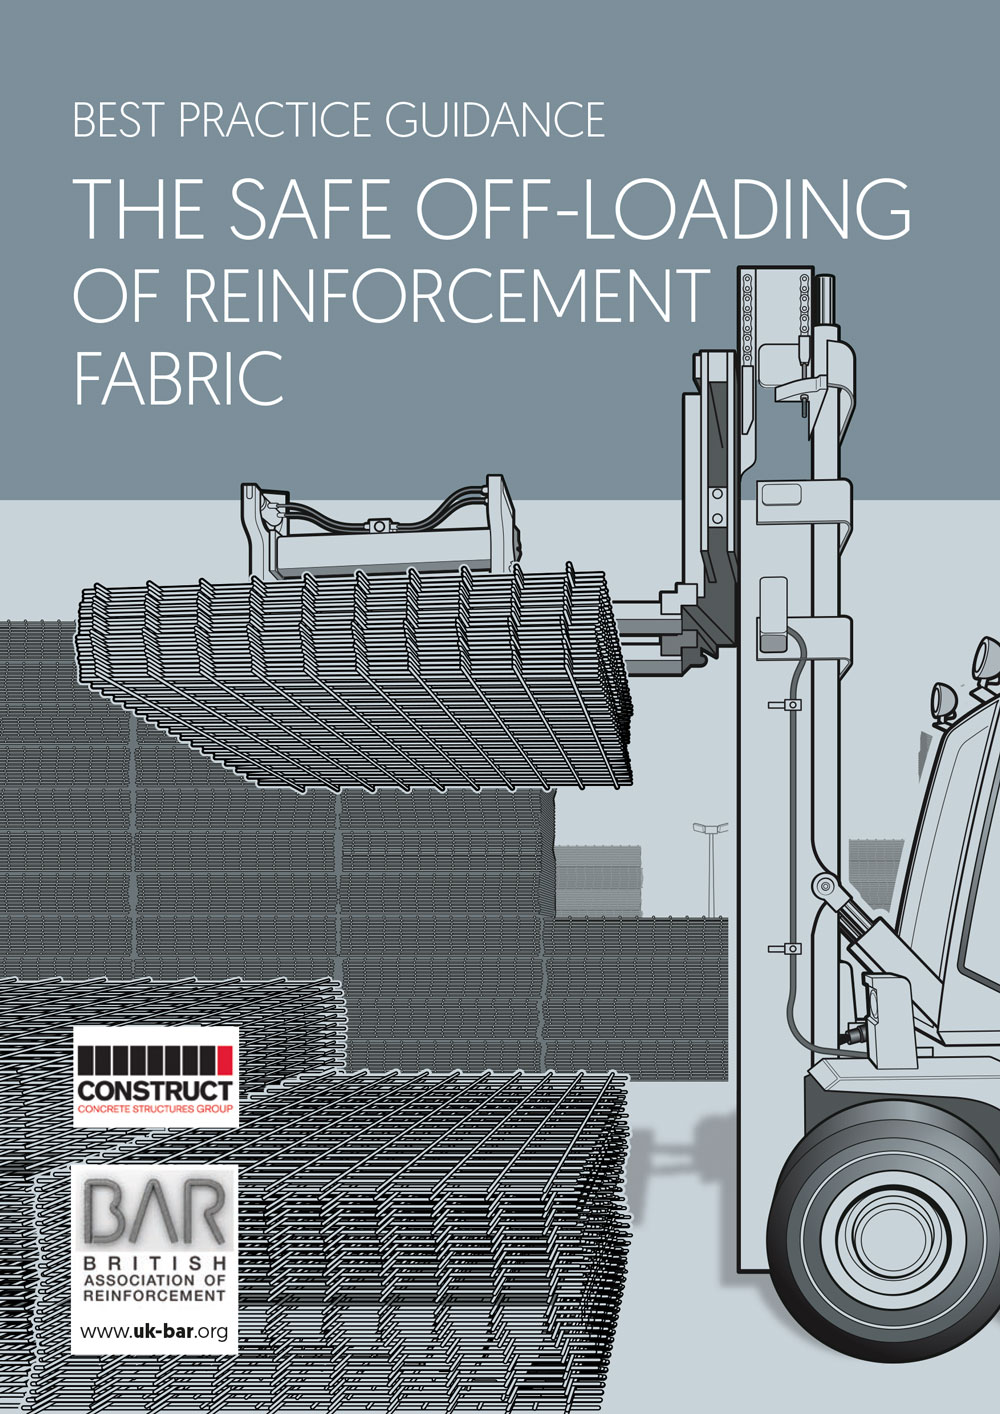 The Safe Off-Loading of Reinforcement Fabric